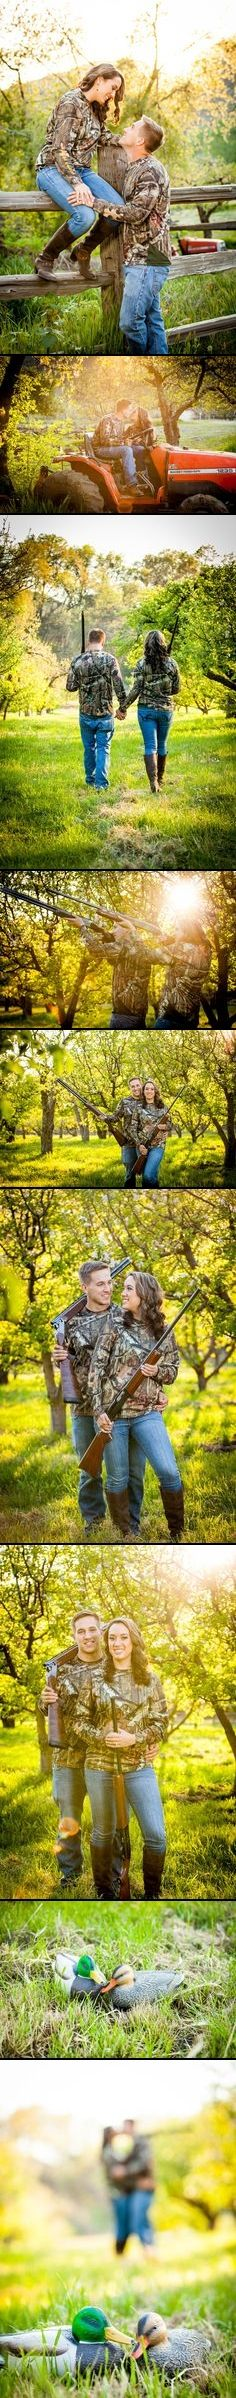 Country Duck Hunting Camo pics. Maybe do this next hunting season and add RaeLynn to some pics :)